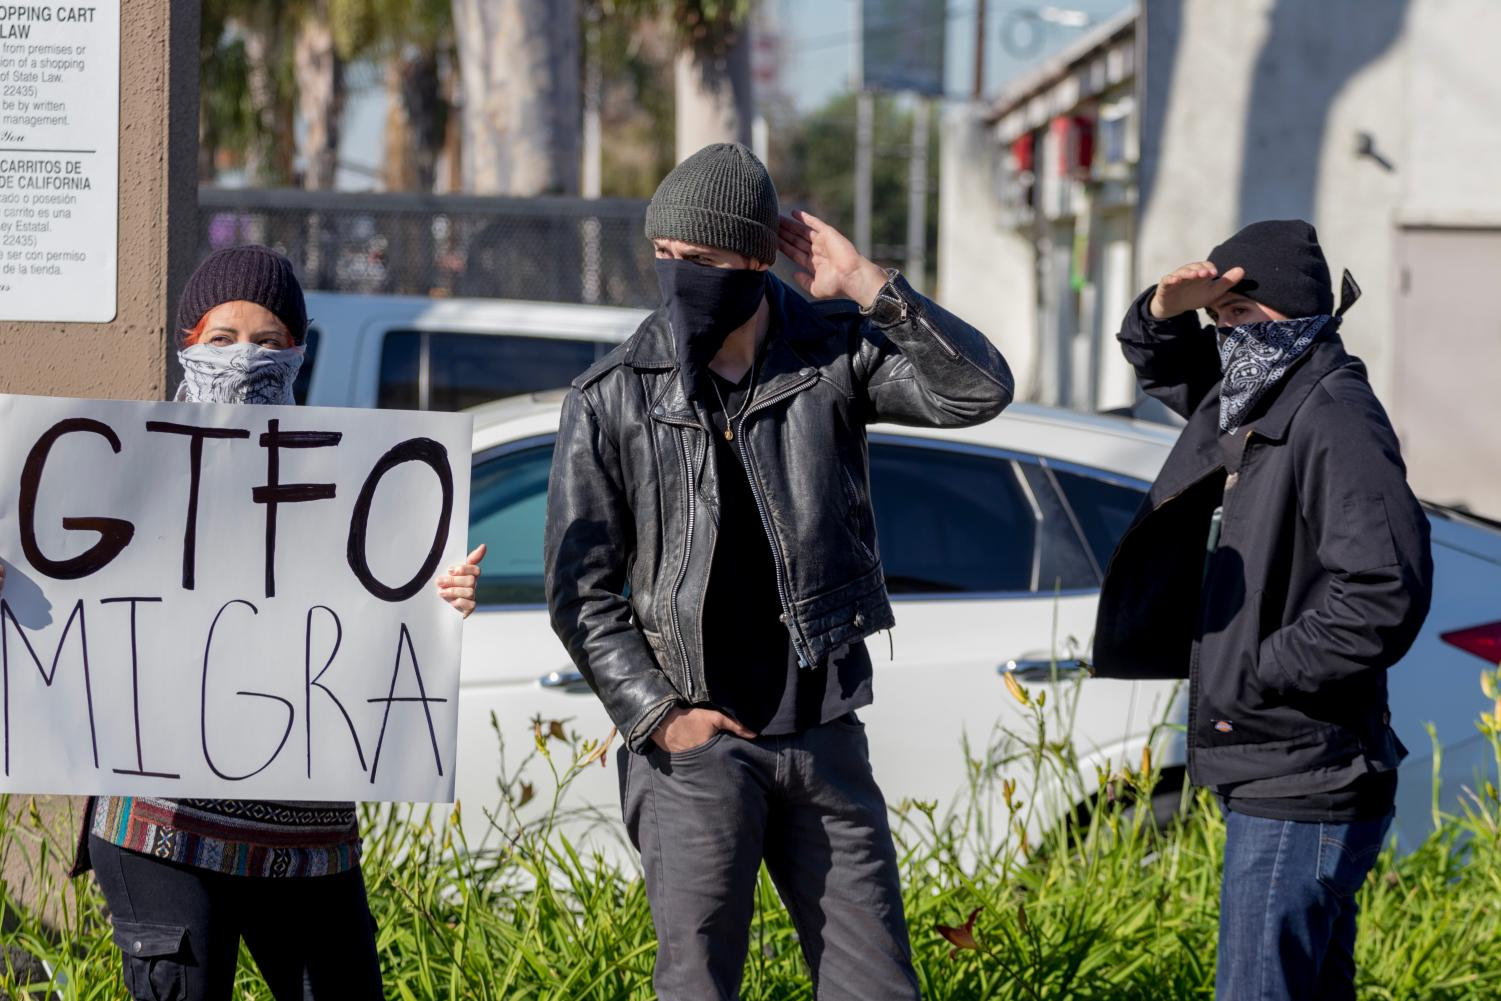 Protestors displayed their animosity towards immigration and customs enforcement in the Northgate Market parking lot, the morning of Feb. 21.